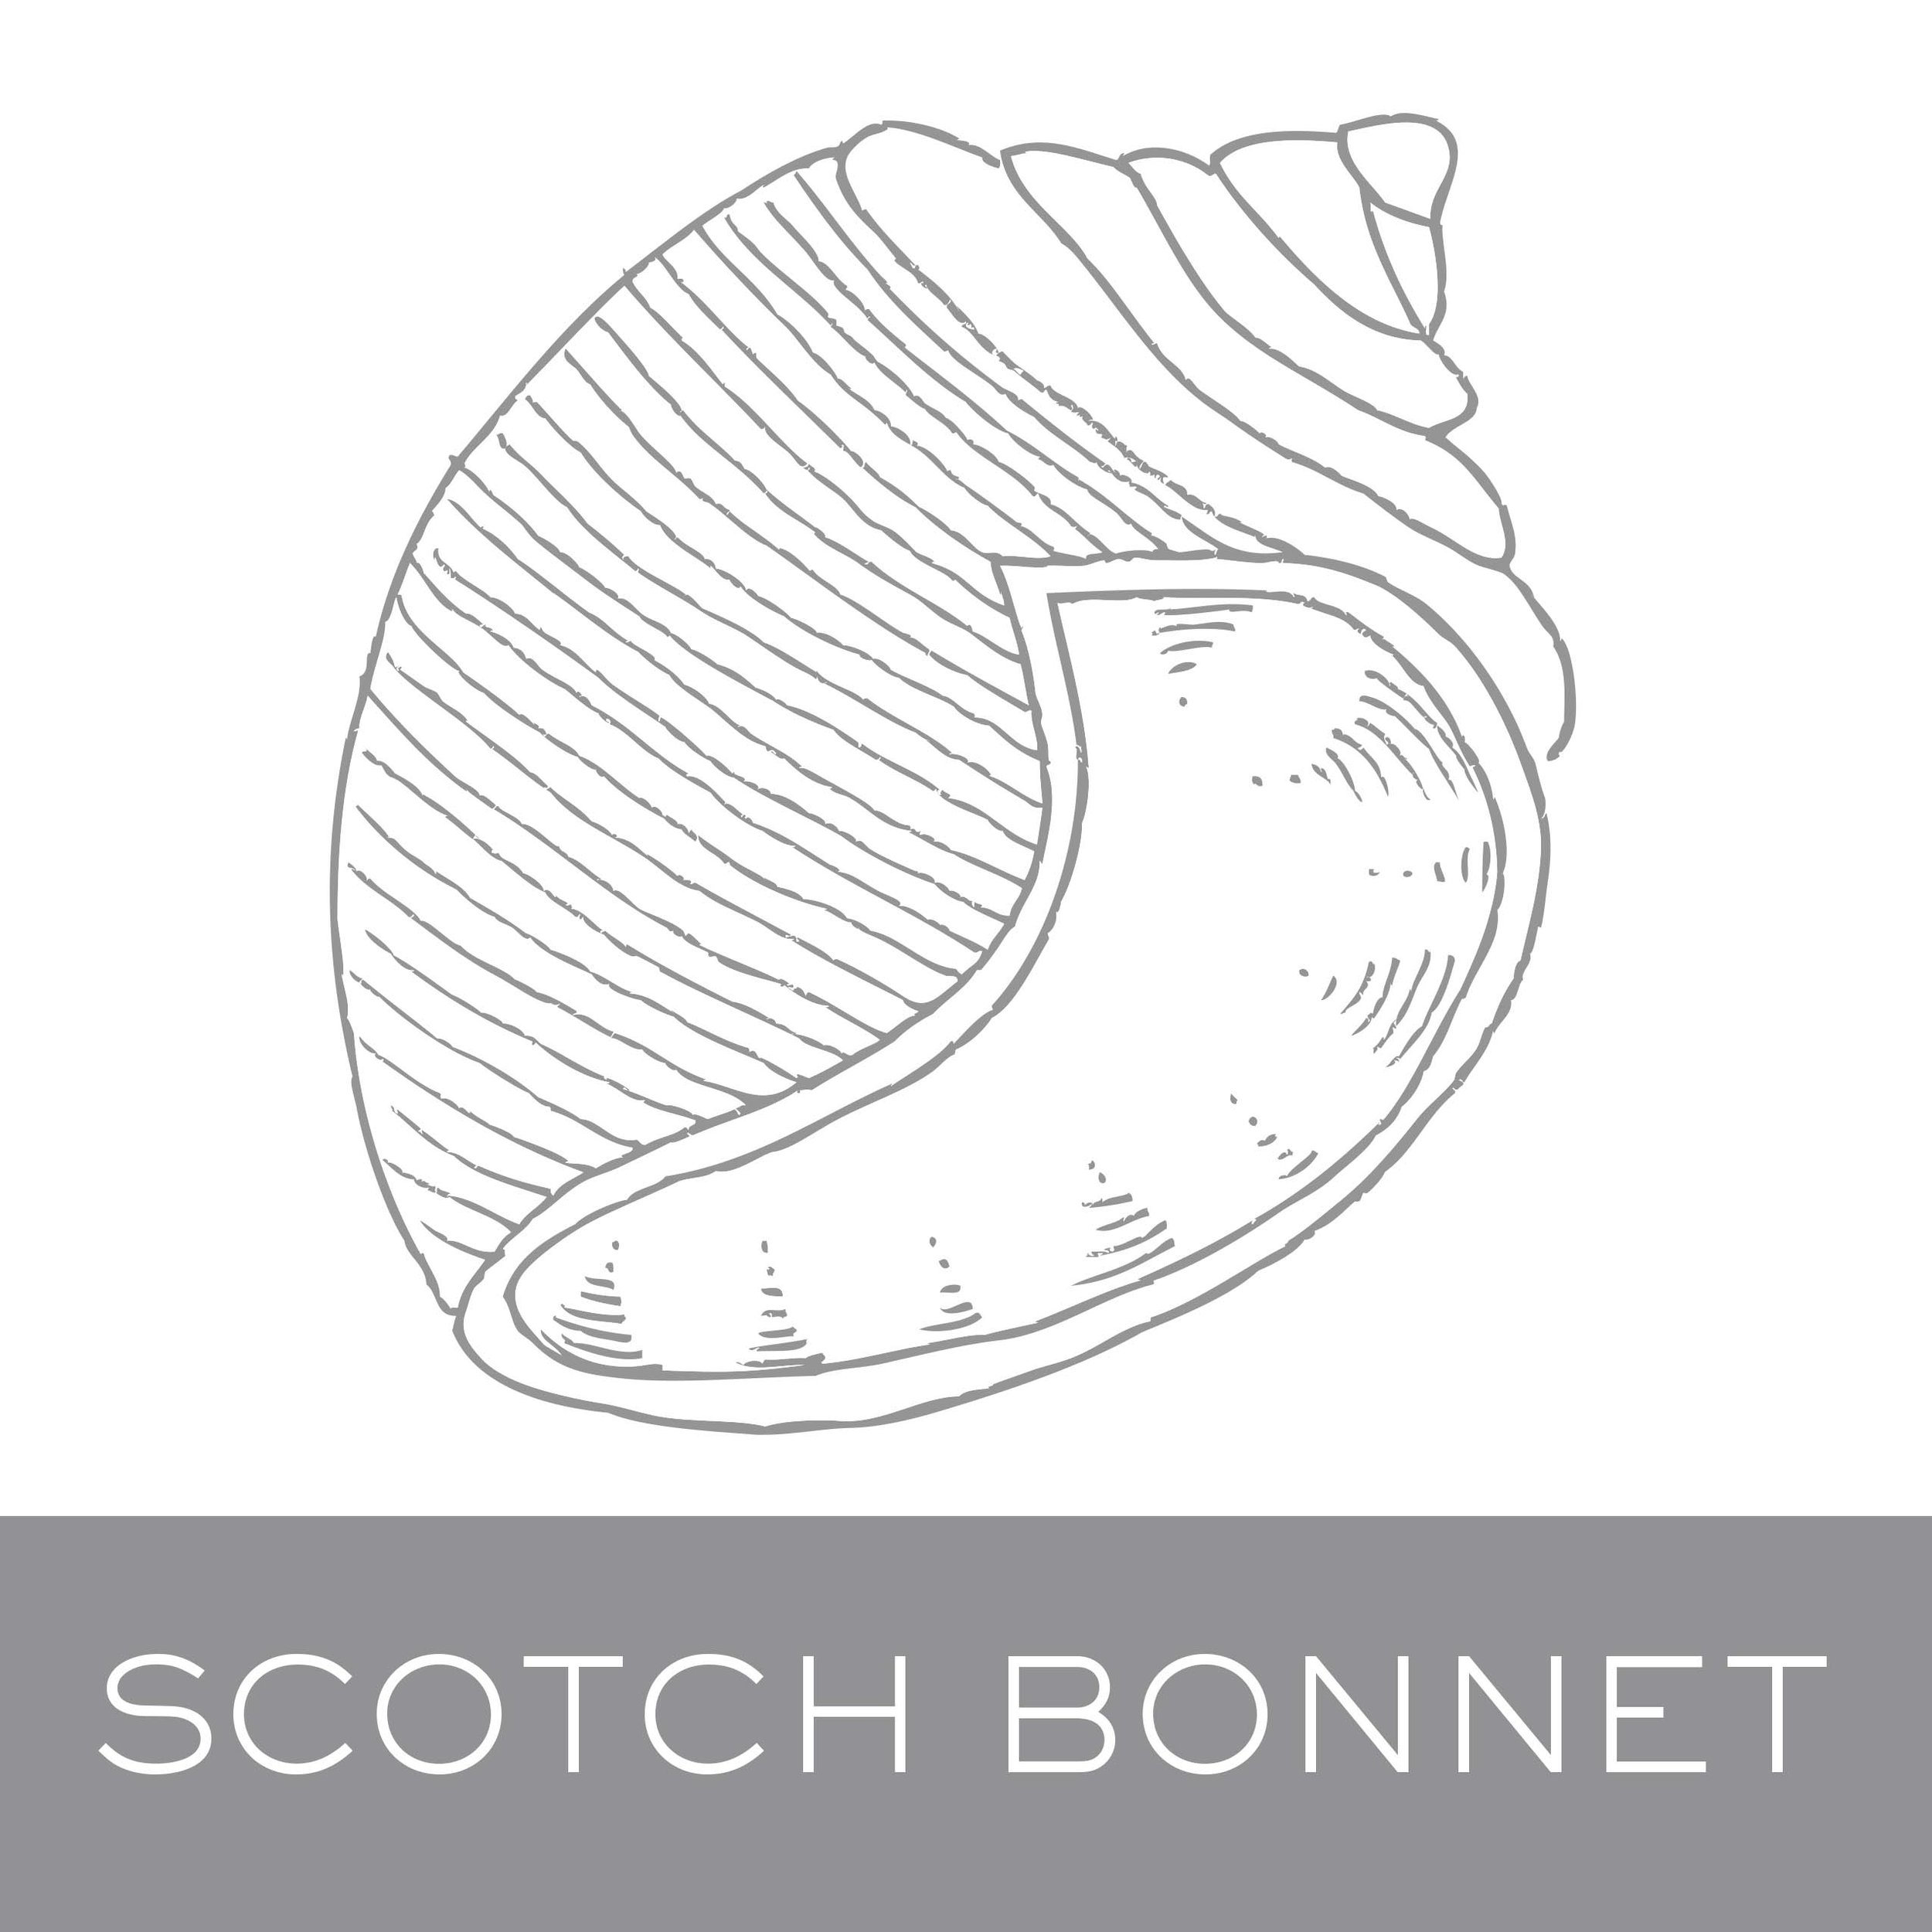 scotchbonnet.jpg